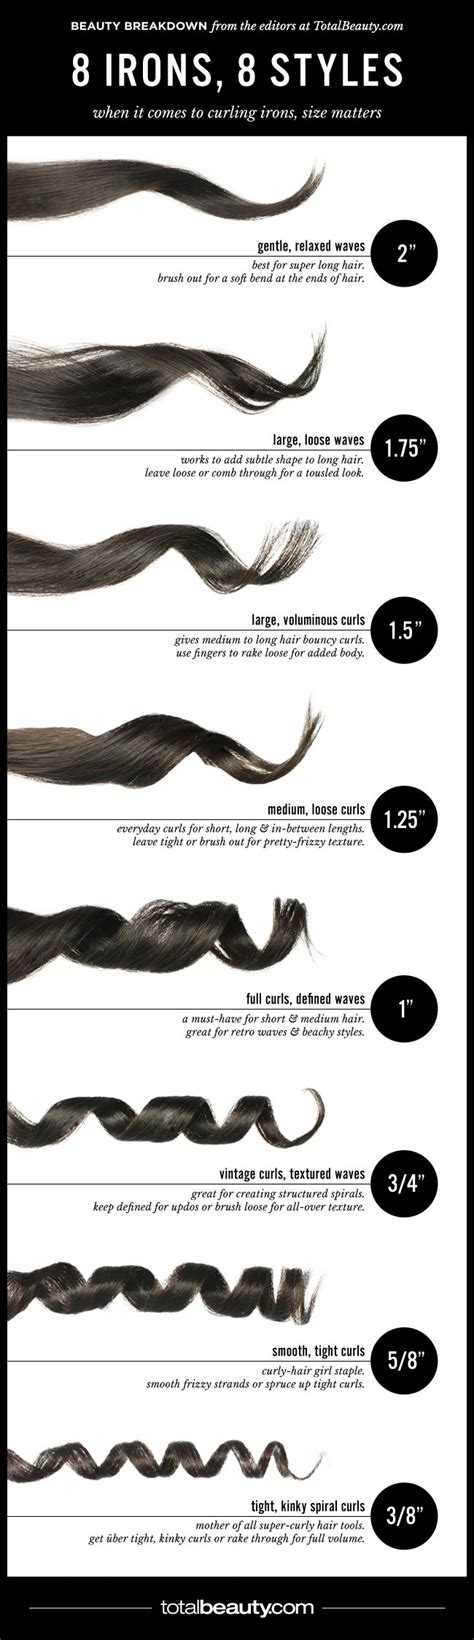 what is the best size curling iron for medium length hair yhat is thin how curling iron sizes affect the curl results black